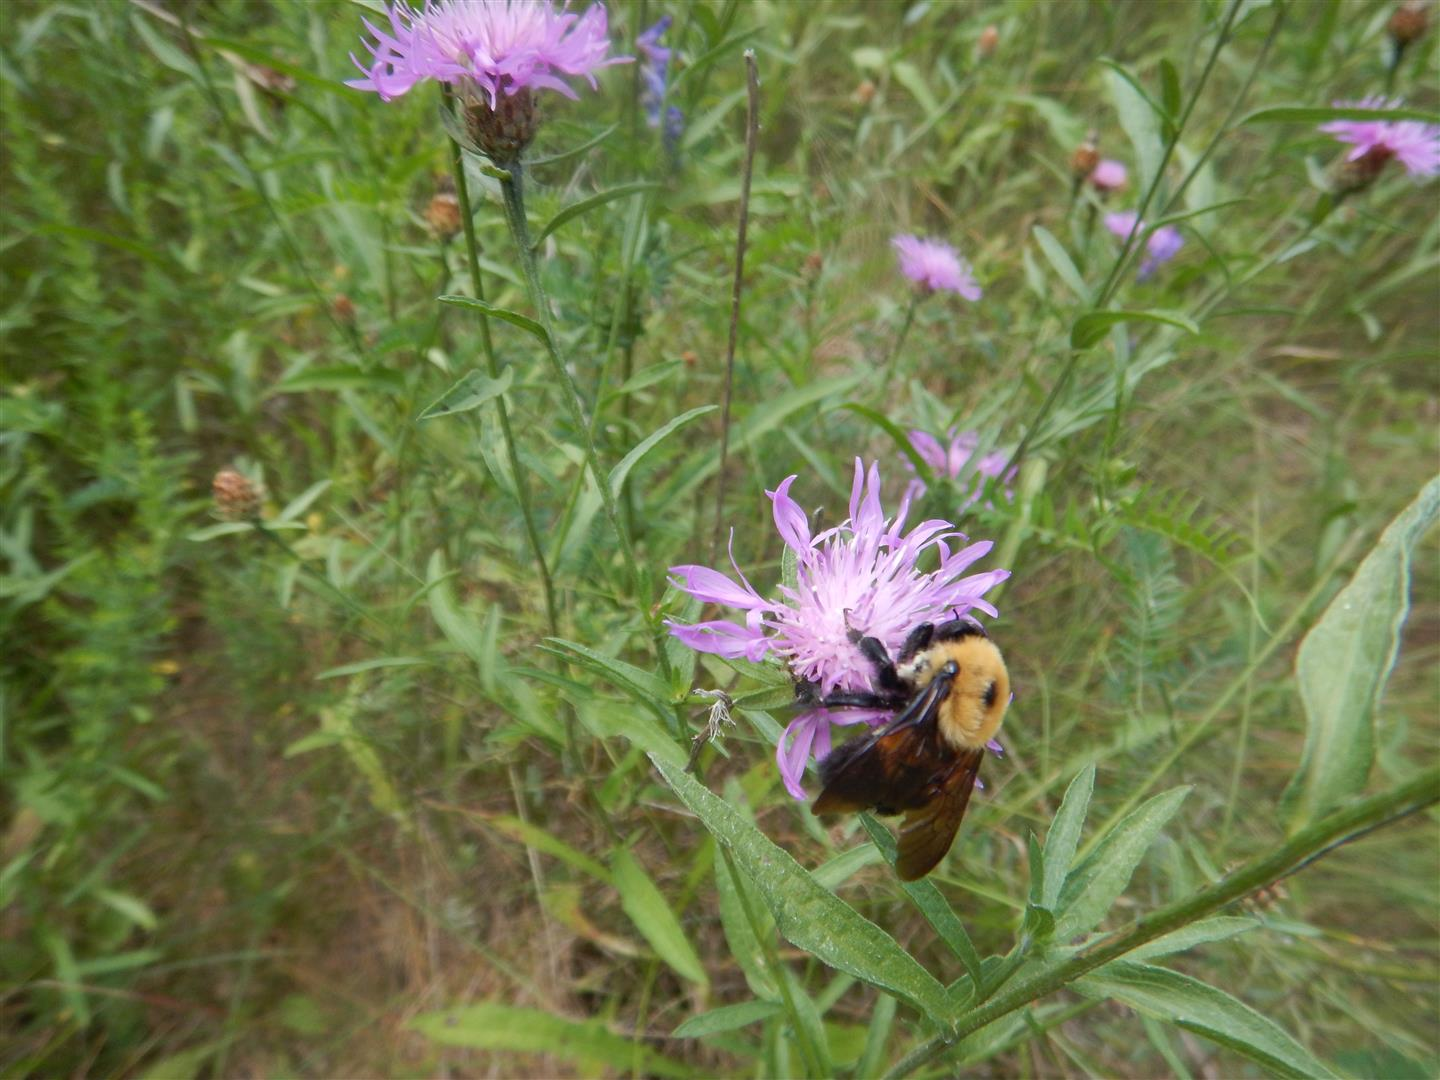 Bumble Bee - Eaton Property - July 27/18